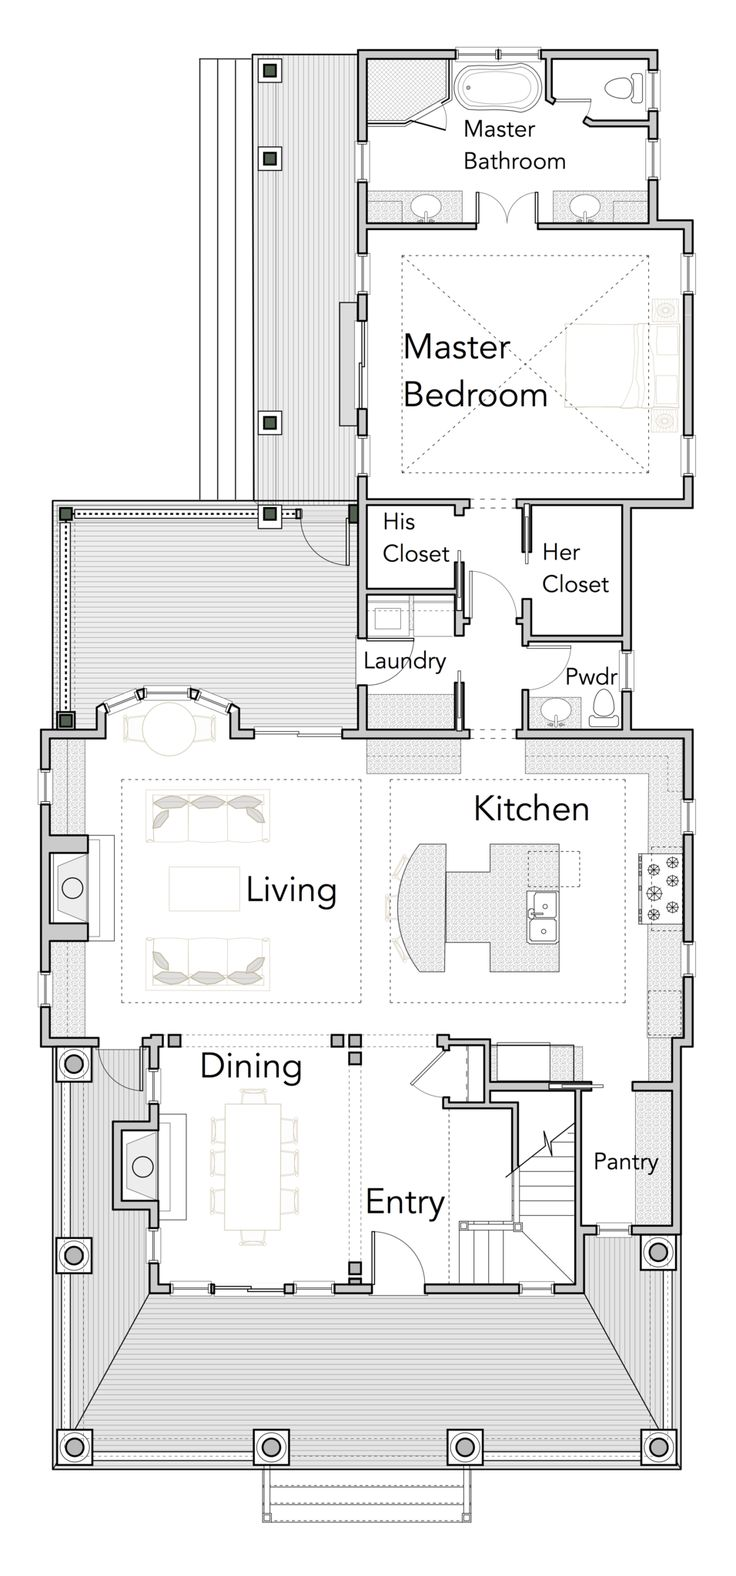 29 best development images on pinterest architecture small